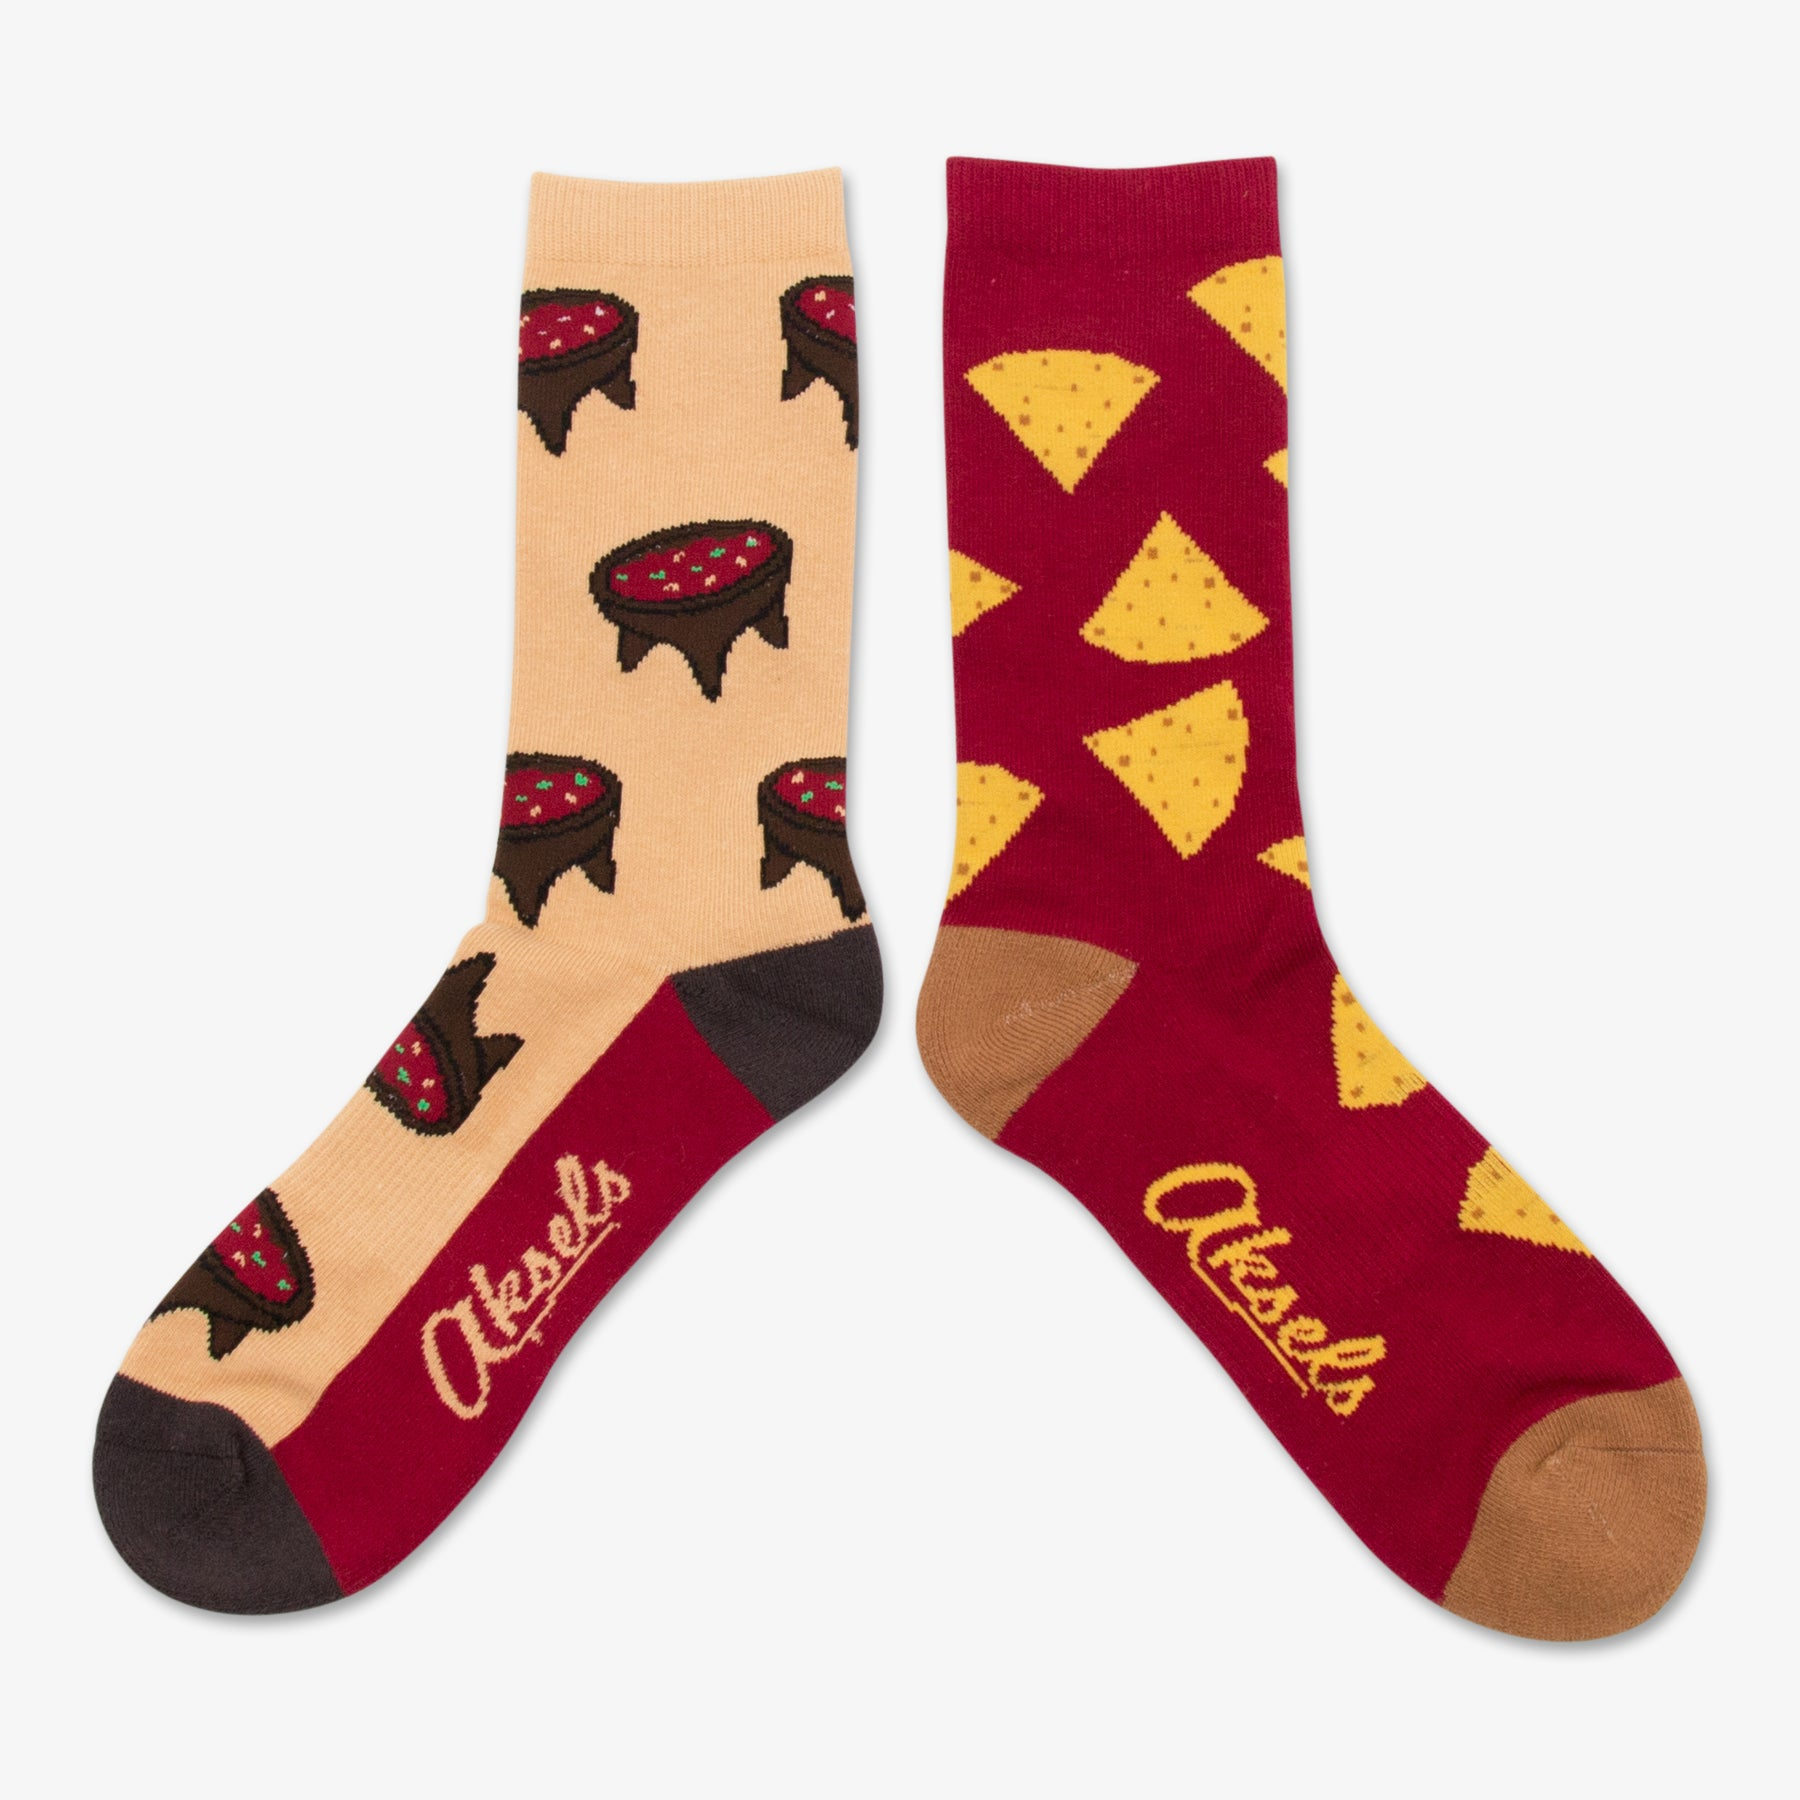 Chips and Salsa Socks